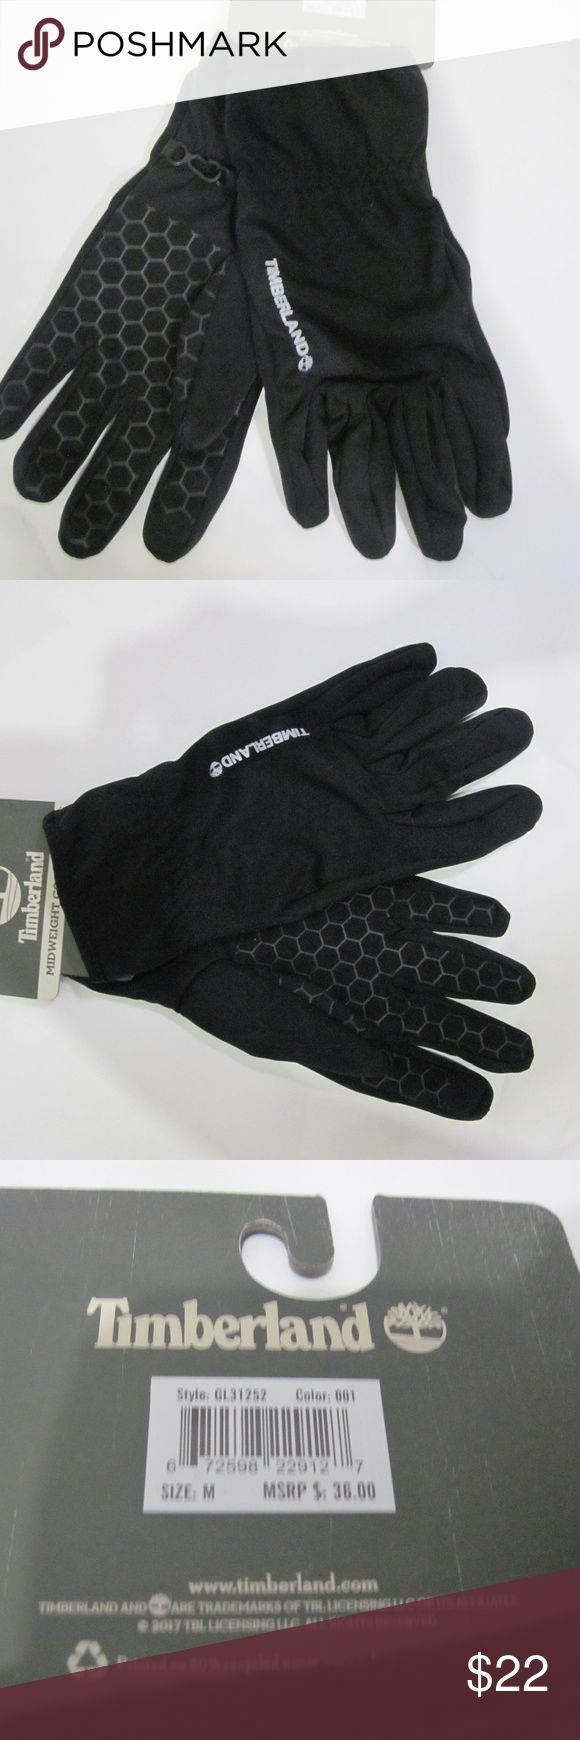 Timberland Men's Glove - Size Medium Touch screen gloves for men.  See photos for additional description. Timberland Accessories Gloves